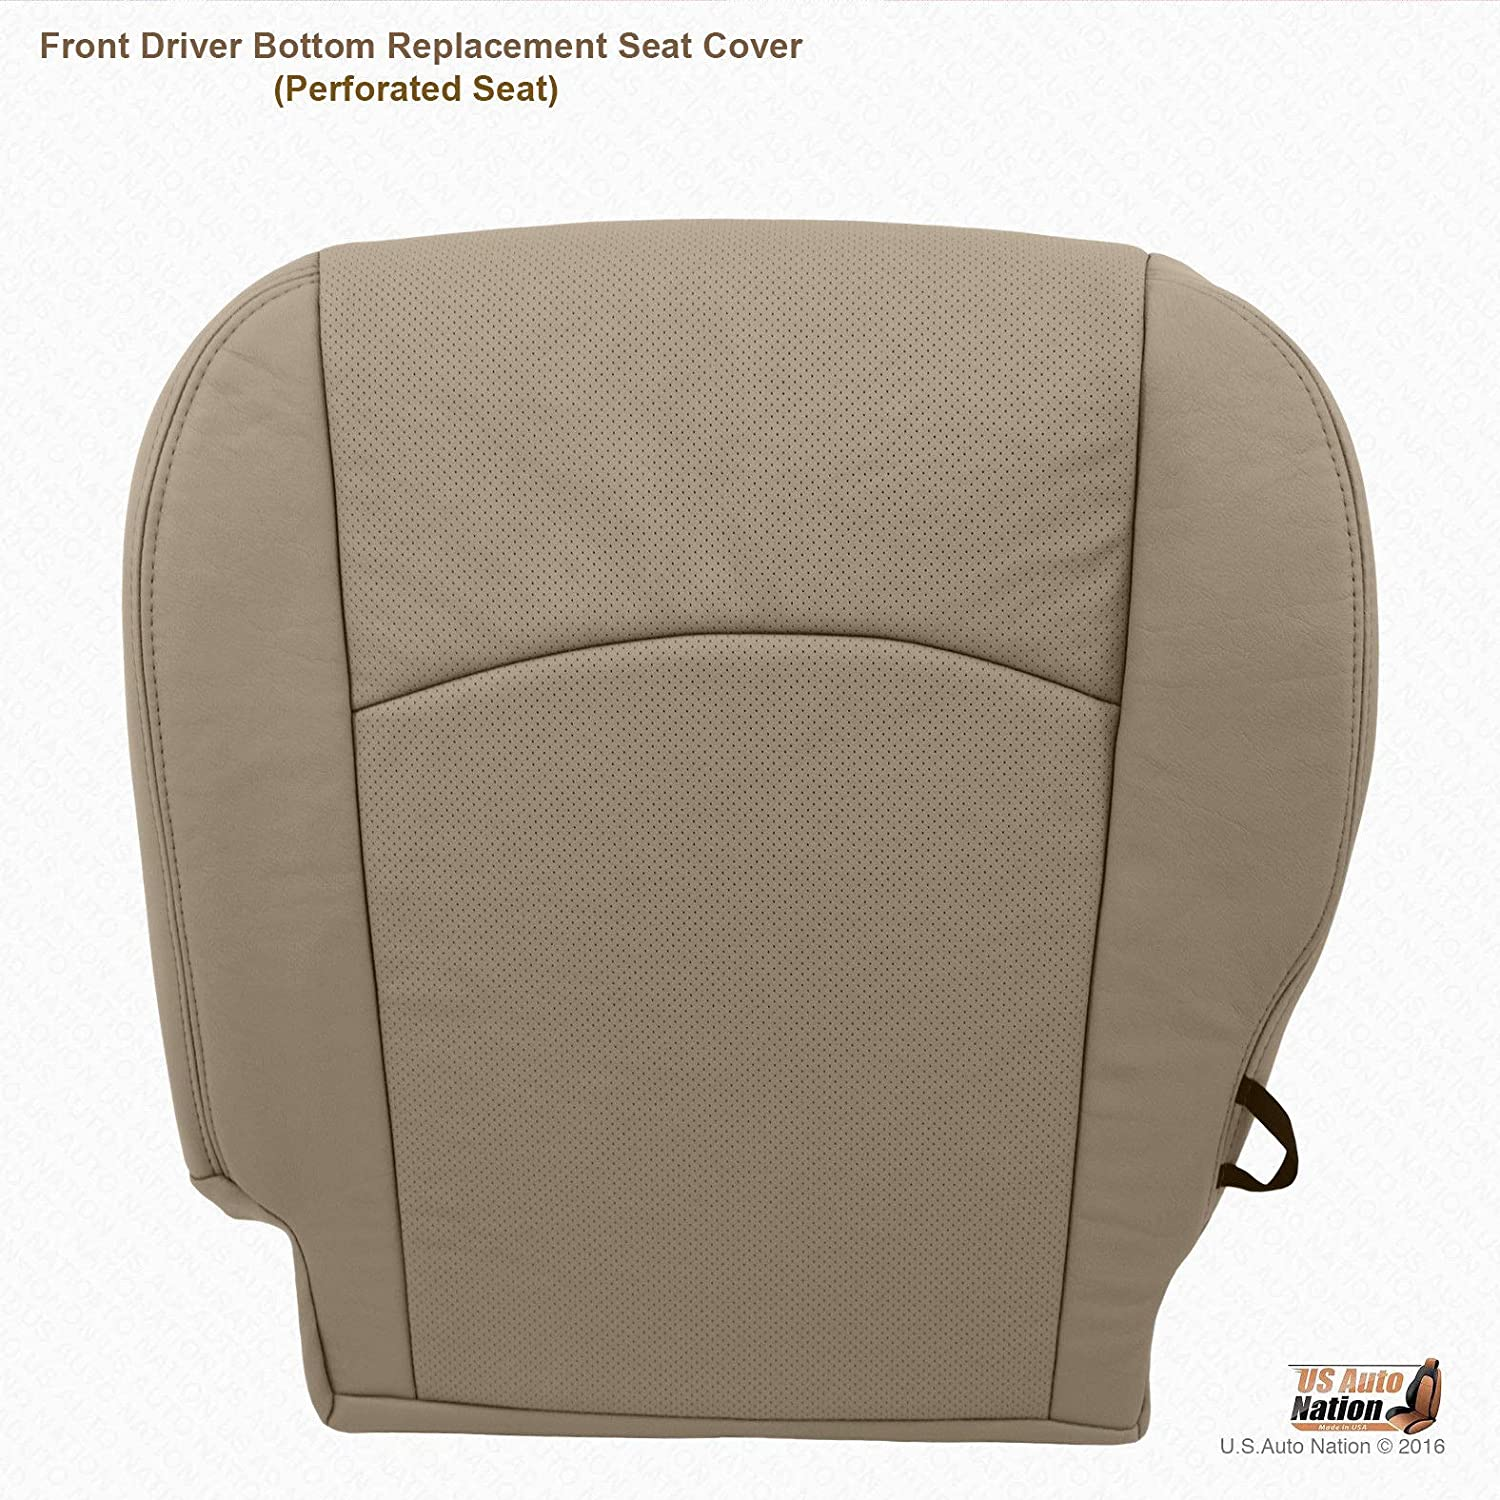 2011 Dodge Ram 3500 4500 Driver Bottom Replacement Synthetic Leather Seat Cover